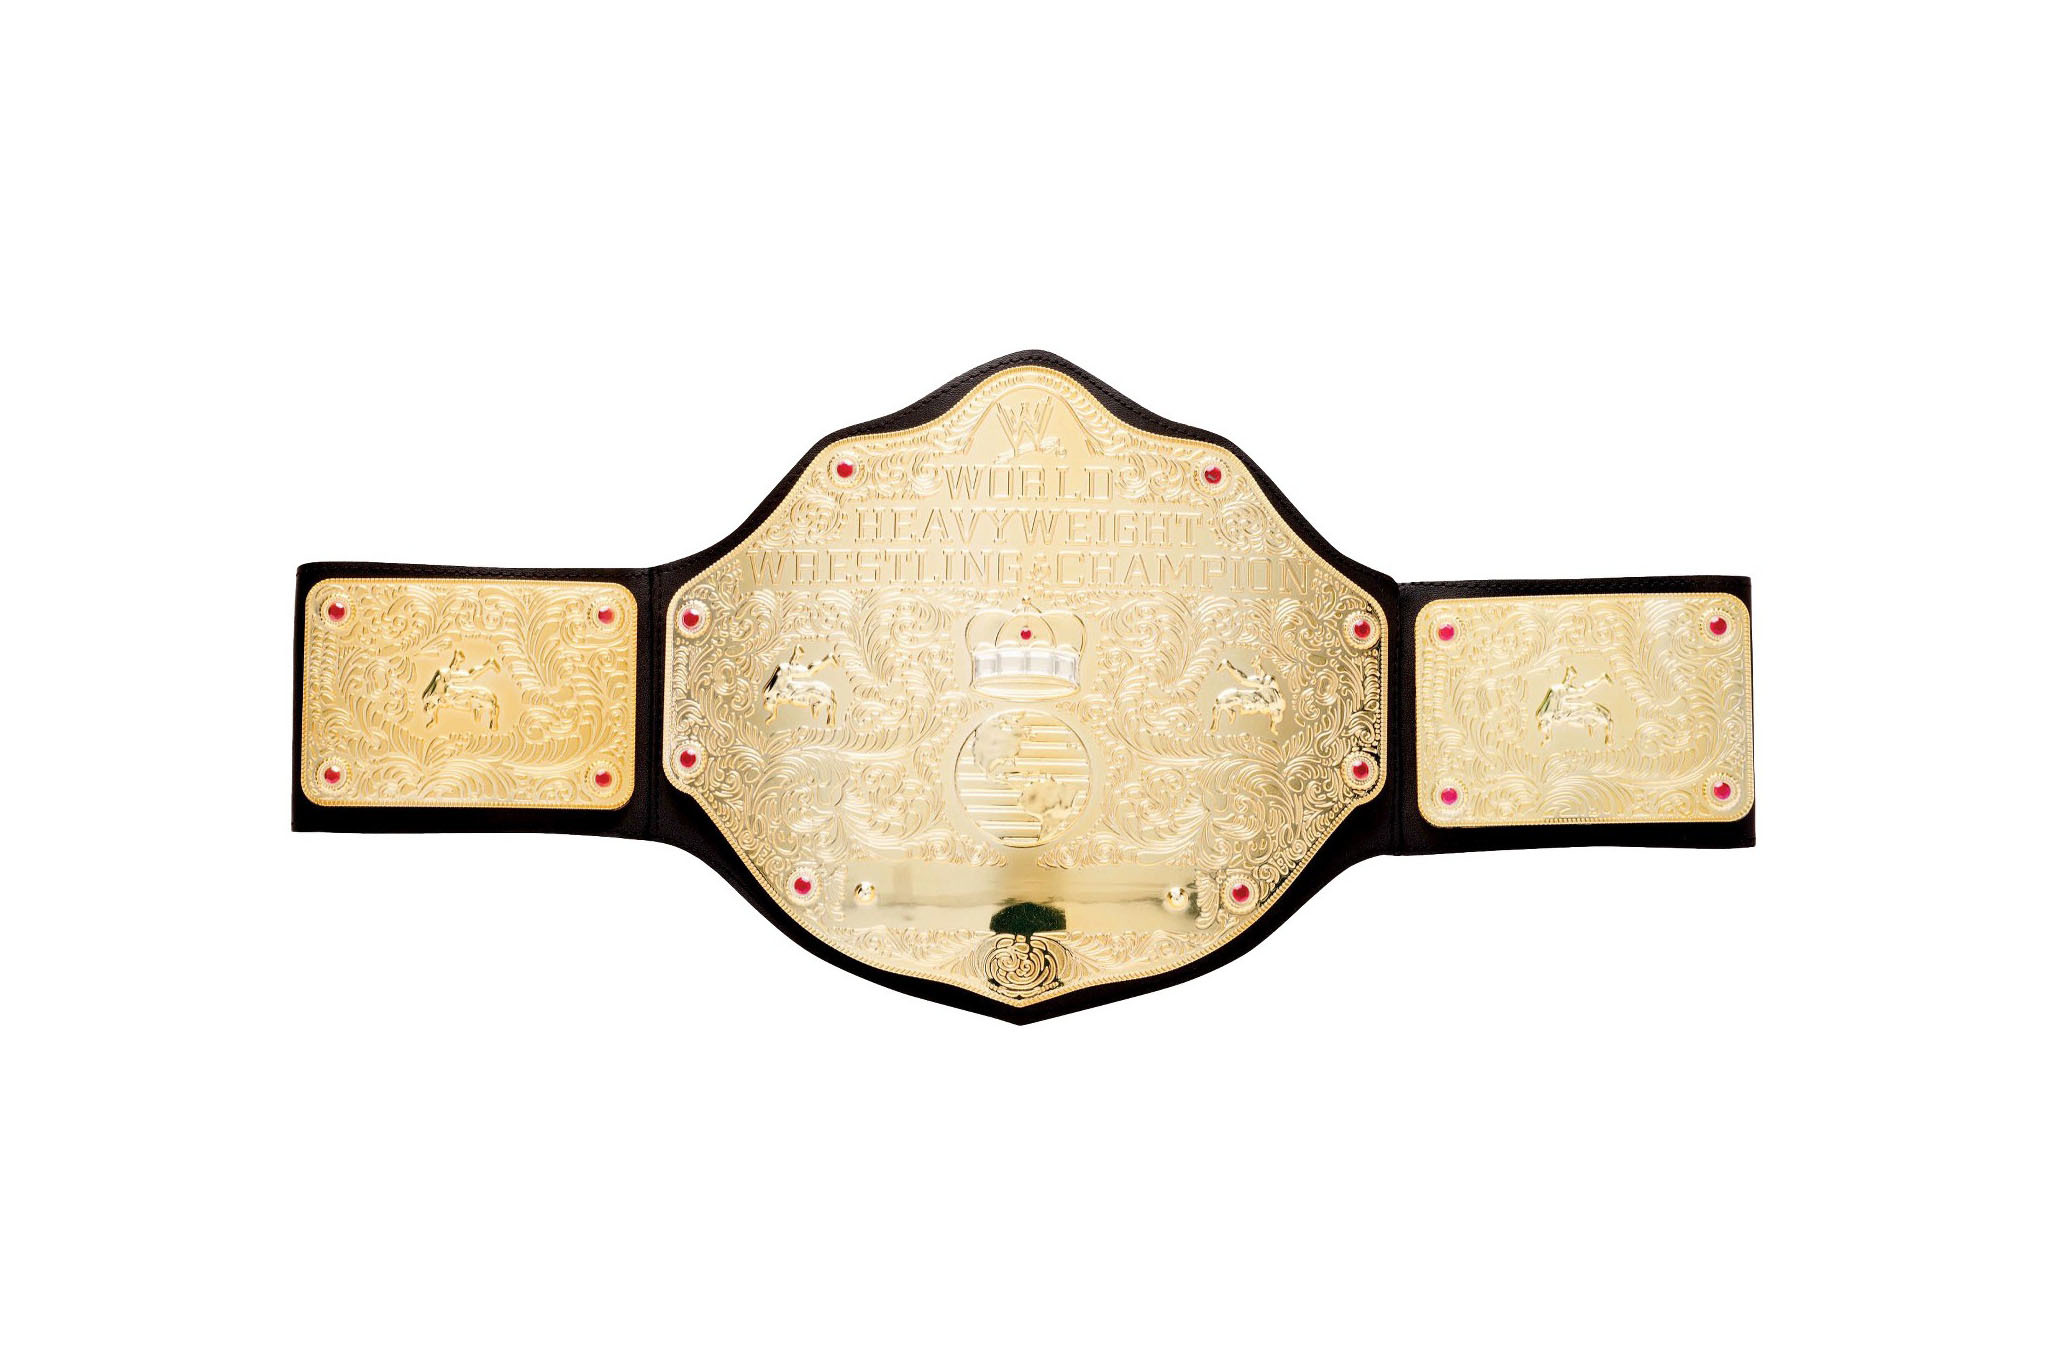 World Heavyweight Championship Belt